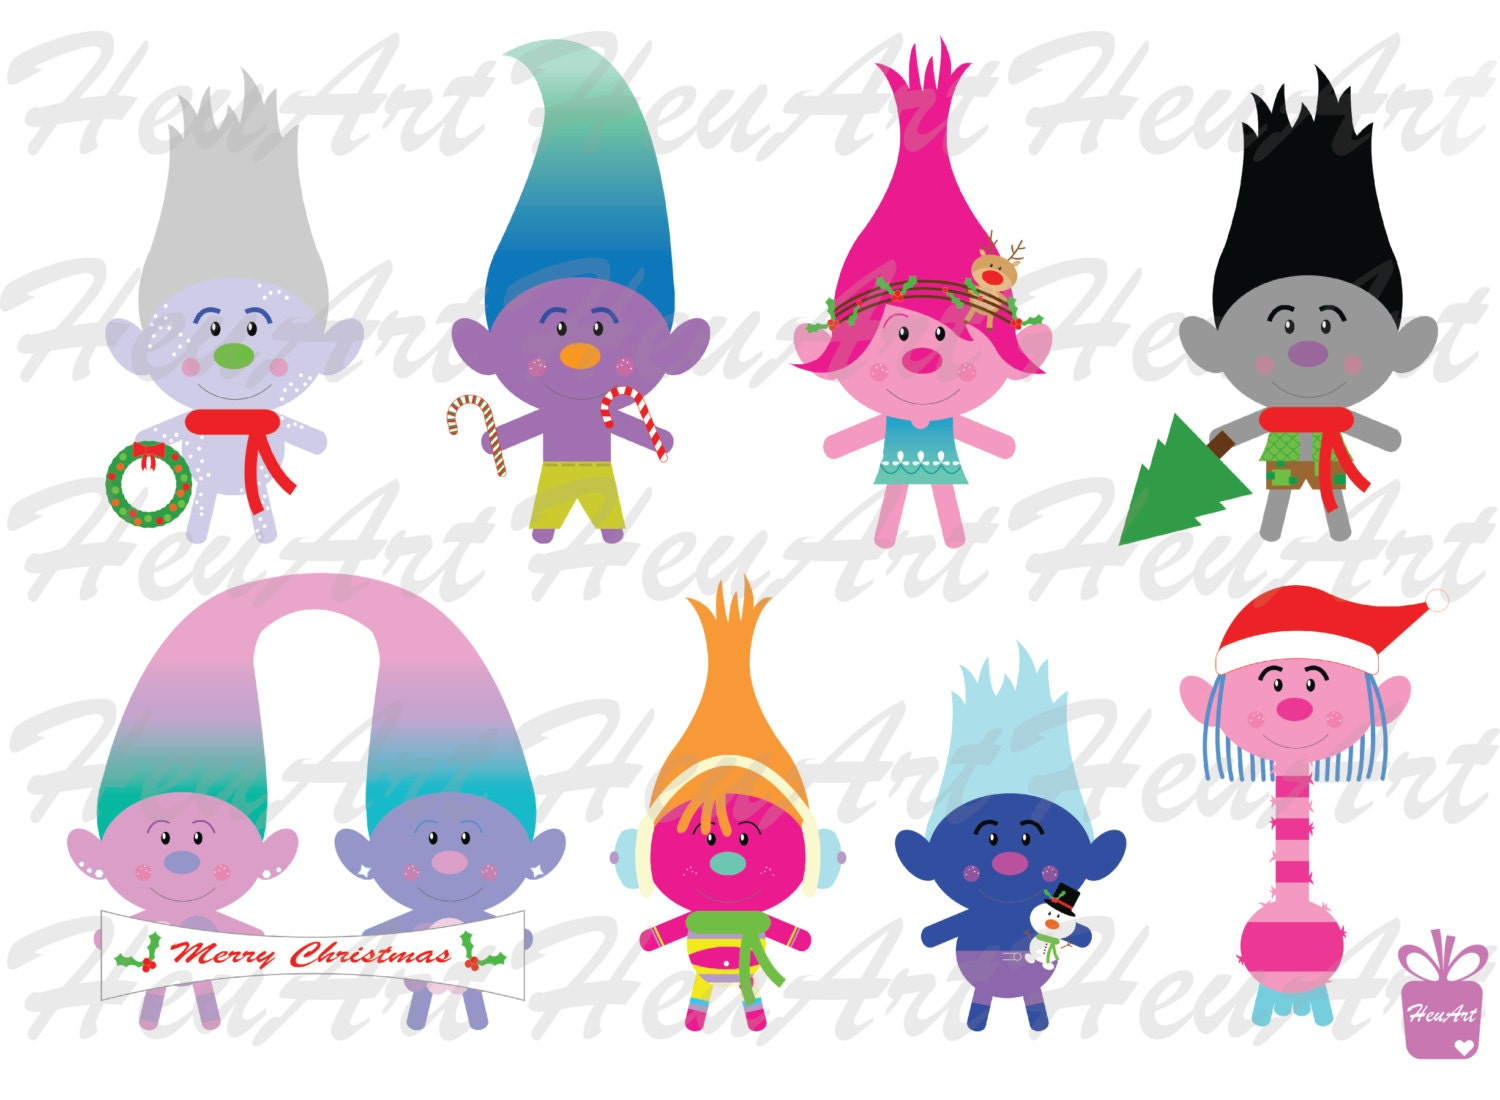 NEW Trolls Christmas Clipart Cute Trolls Christmas Clipart | Etsy